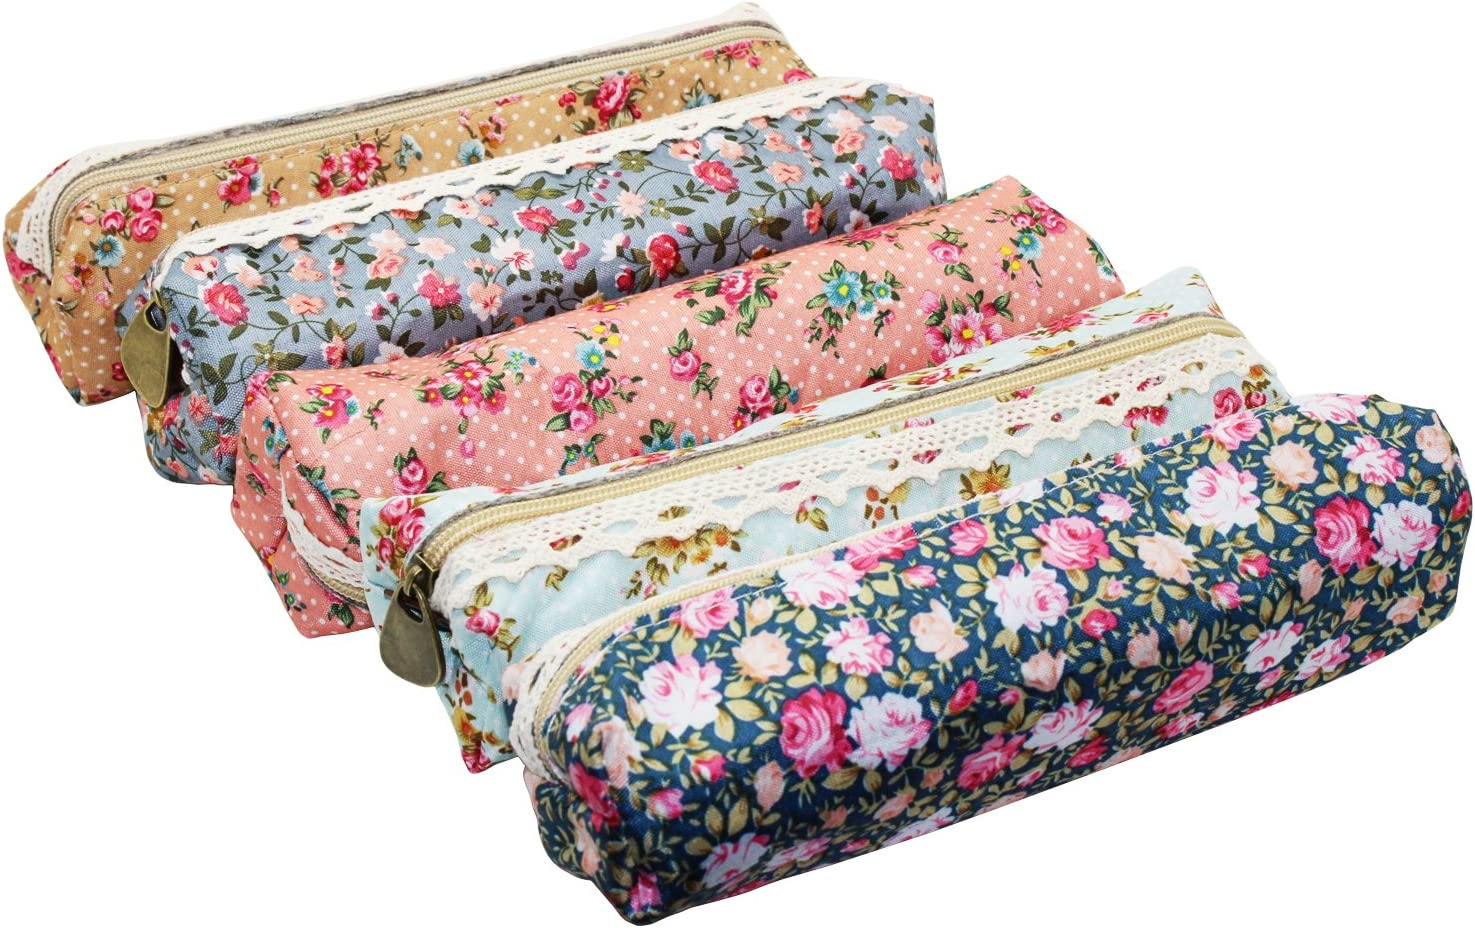 LJY 5-Pack Assorted Flower Floral Canvas Pen Holder Stationery Pencil Pouch Cosmetic Bags